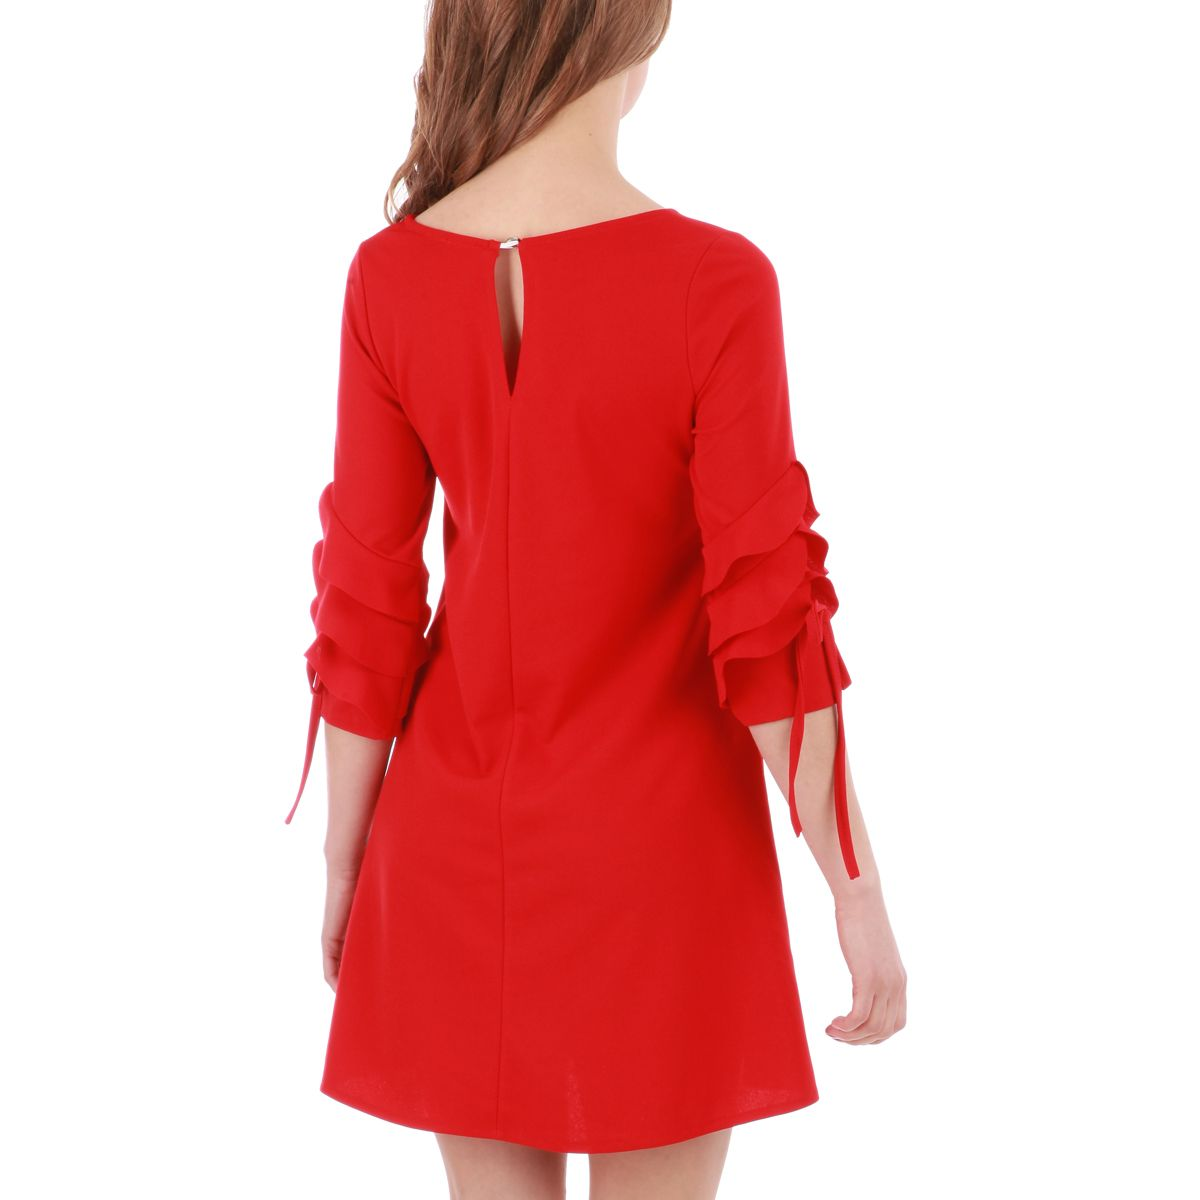 Robe evasee rouge manches 3 4 froufrous femme pas cher for Robe rouge évasée